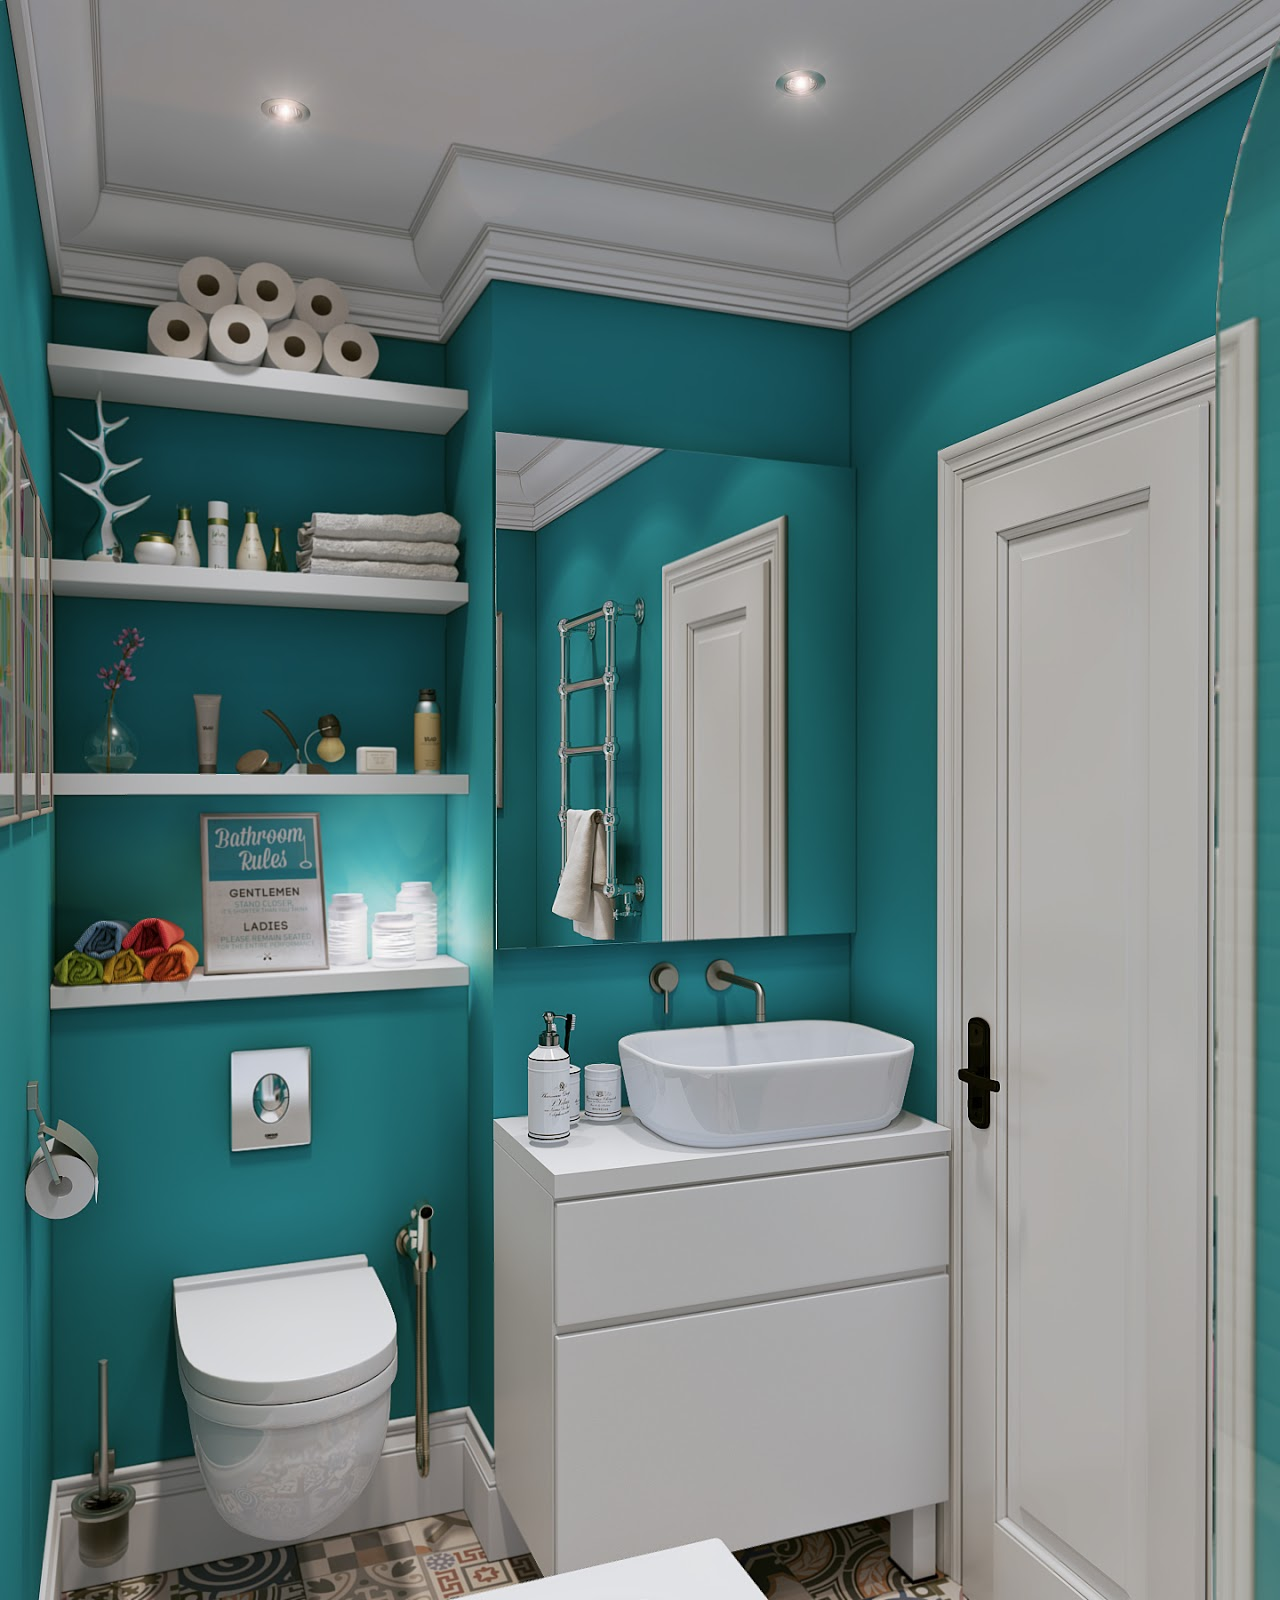 teal bathroom interior design ideas teal colored bathrooms modern wood interior home